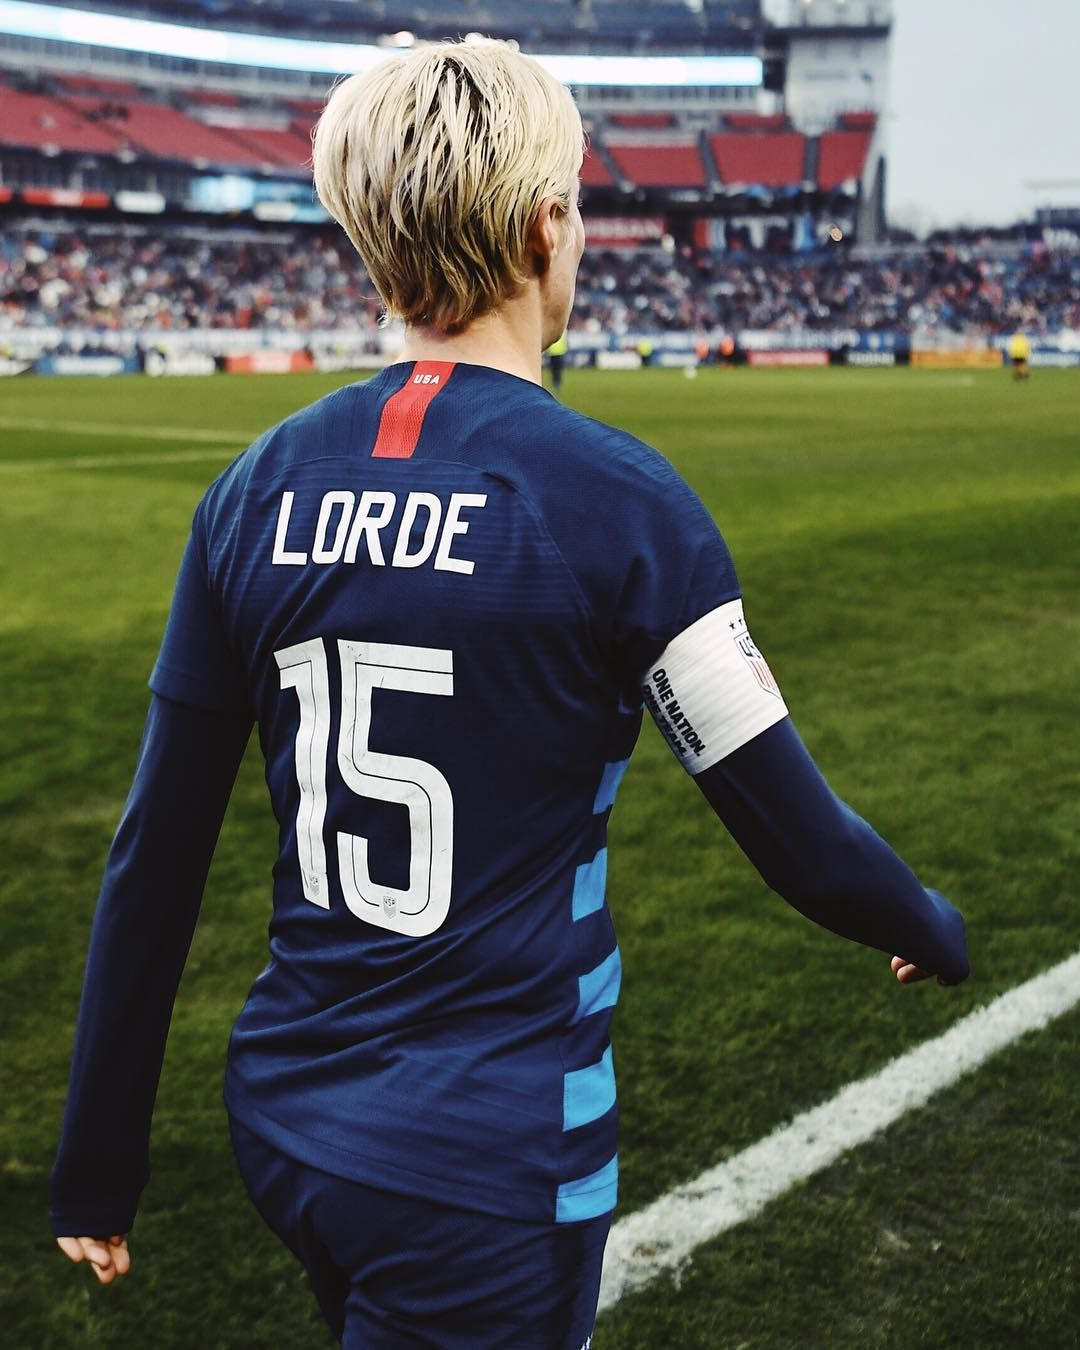 Nwsl Nwsl Instagram Com It S Not Usually About The Name On The Back But Yesterday Was An Exception Who Would You Pick Womens Soccer Soccer League League